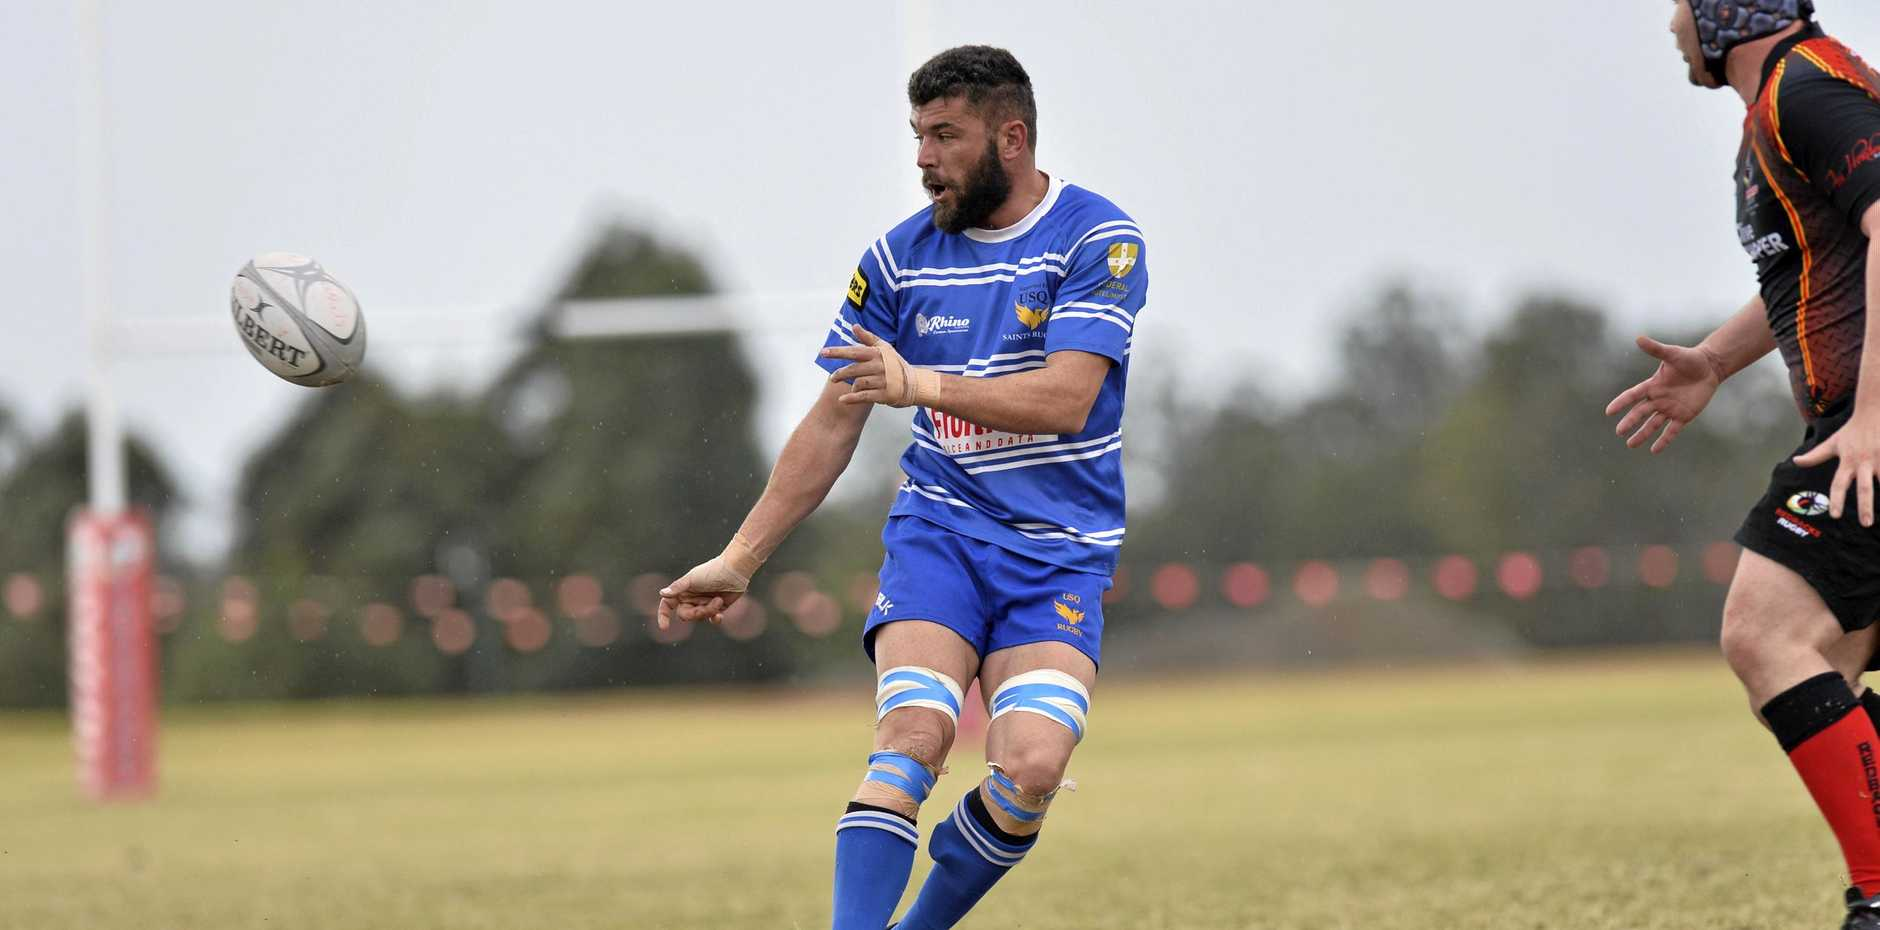 USQ player Martin van Staden will feature in the Remembrance Day Charity match this weekend.